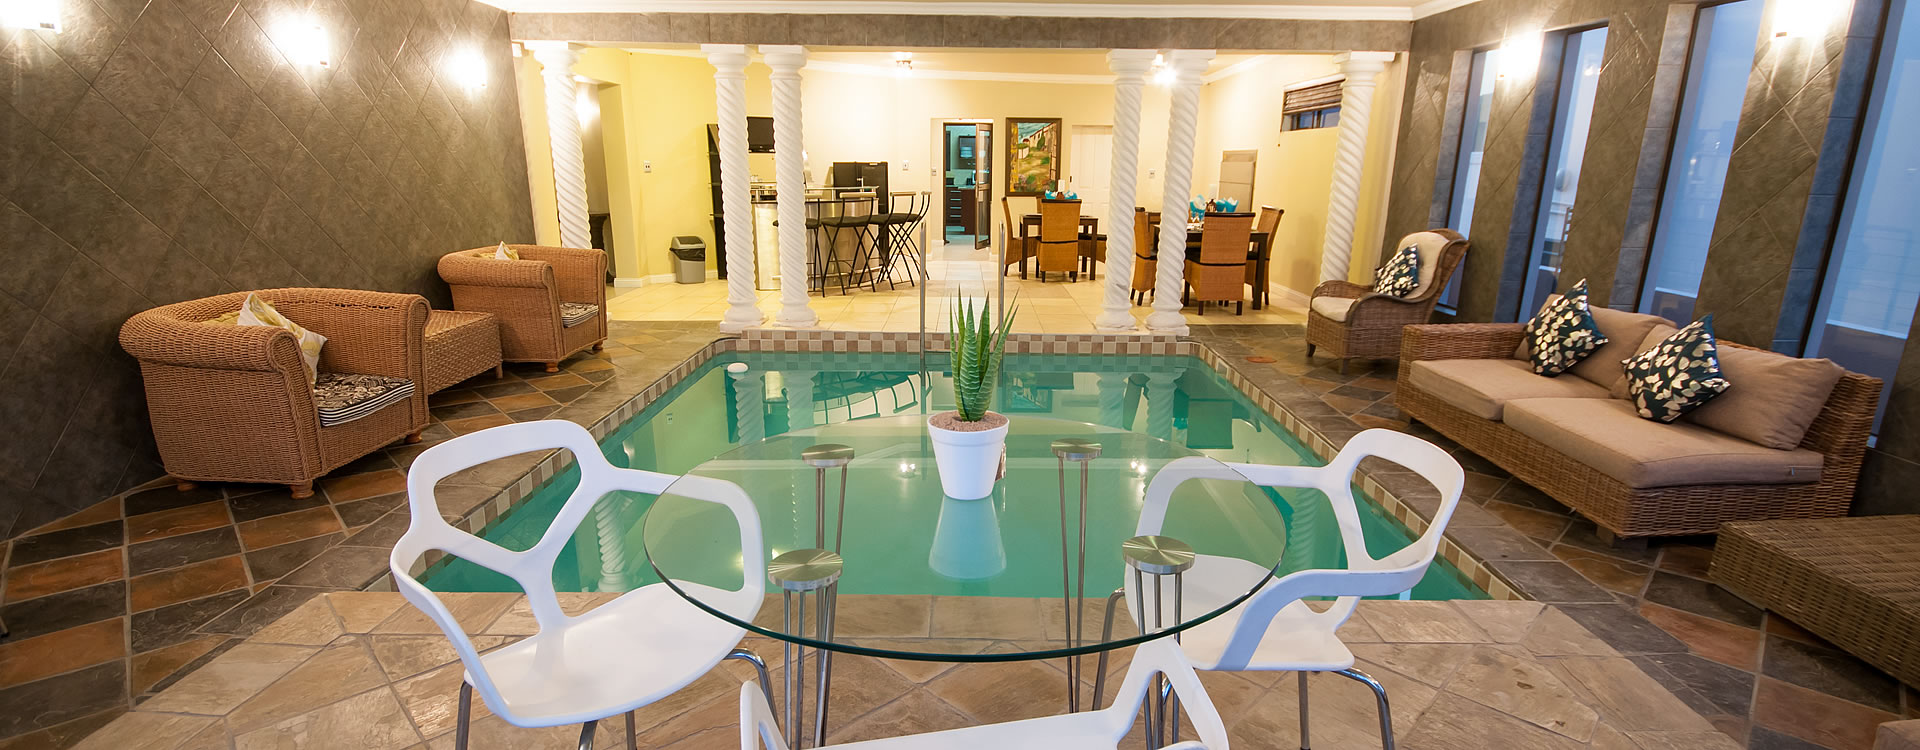 Guest House Swimming Pool